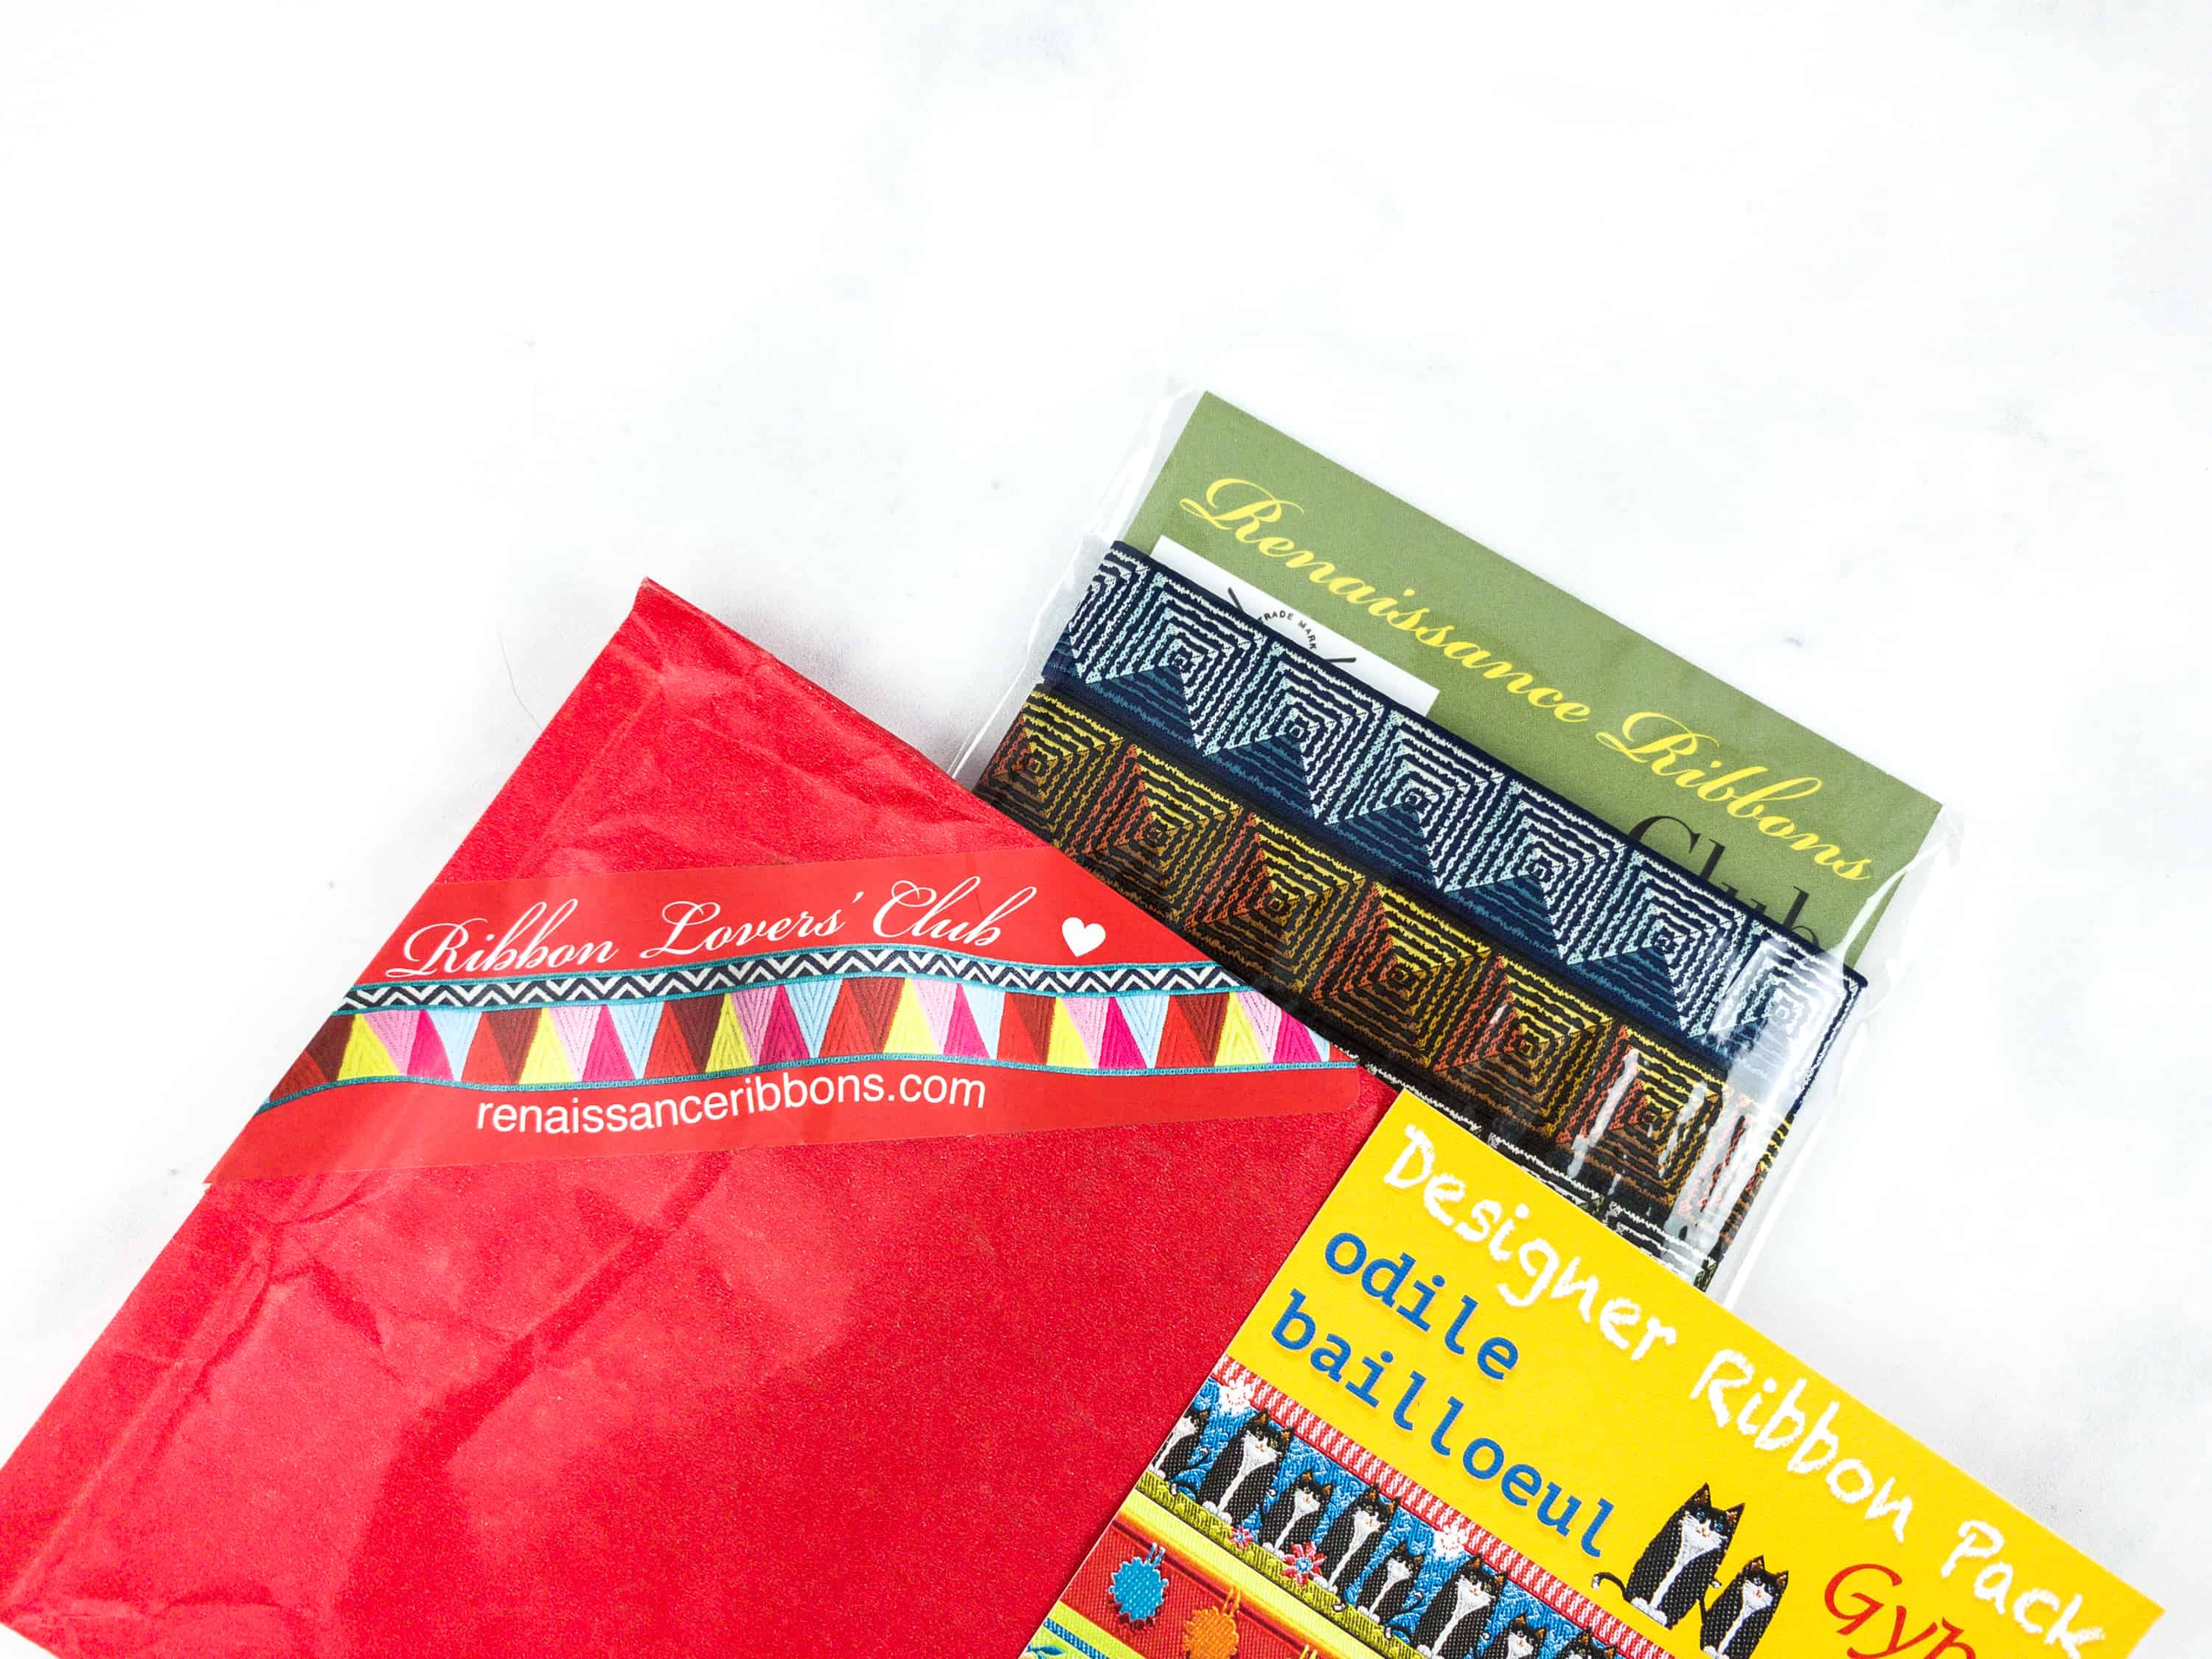 Renaissance Ribbons Ribbon Lovers' Club September 2018 Subscription Review + Coupon